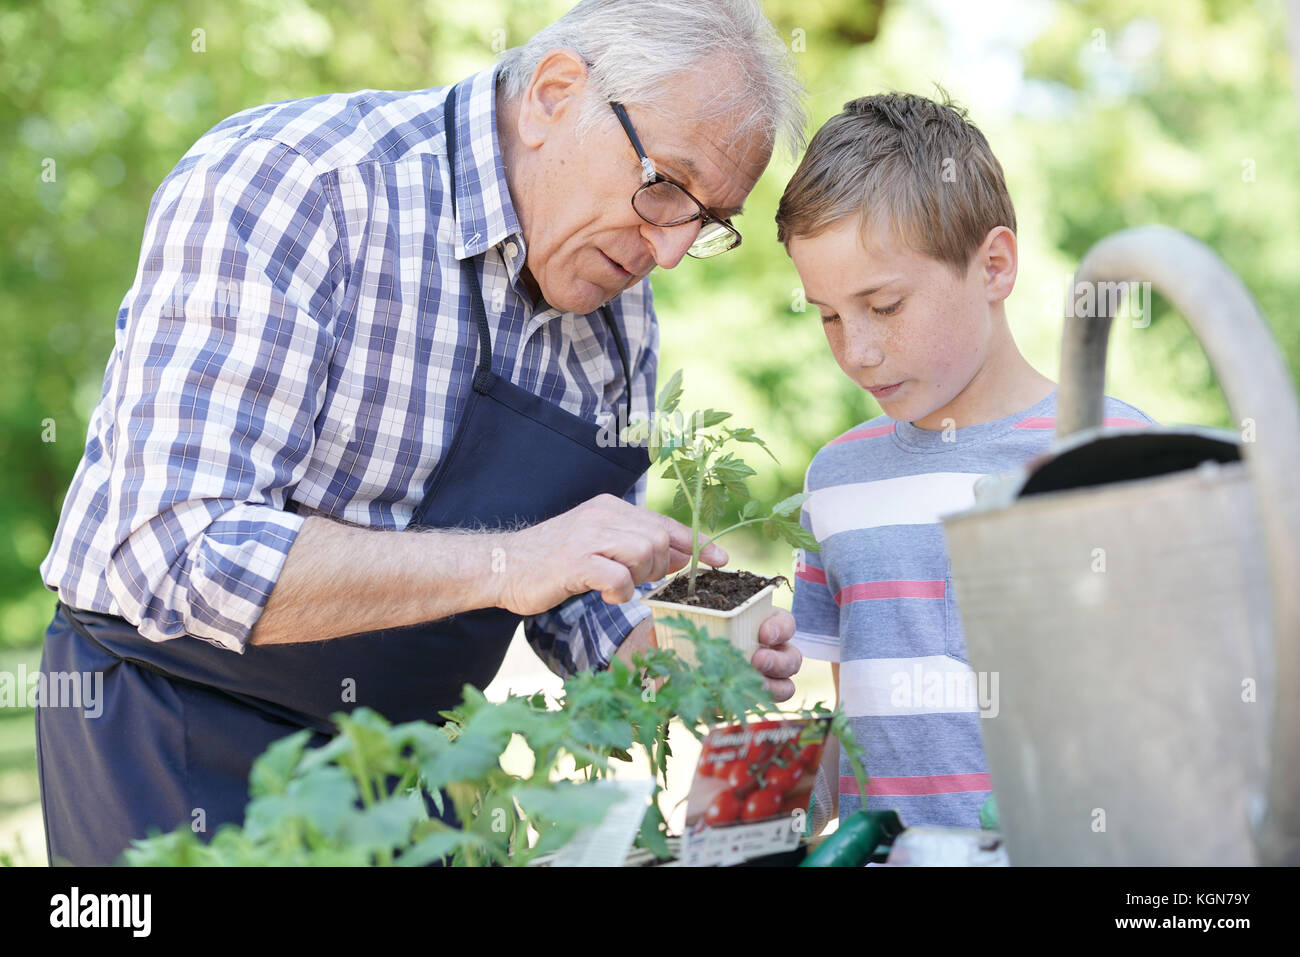 Grandfather with grandson gardening together - Stock Image